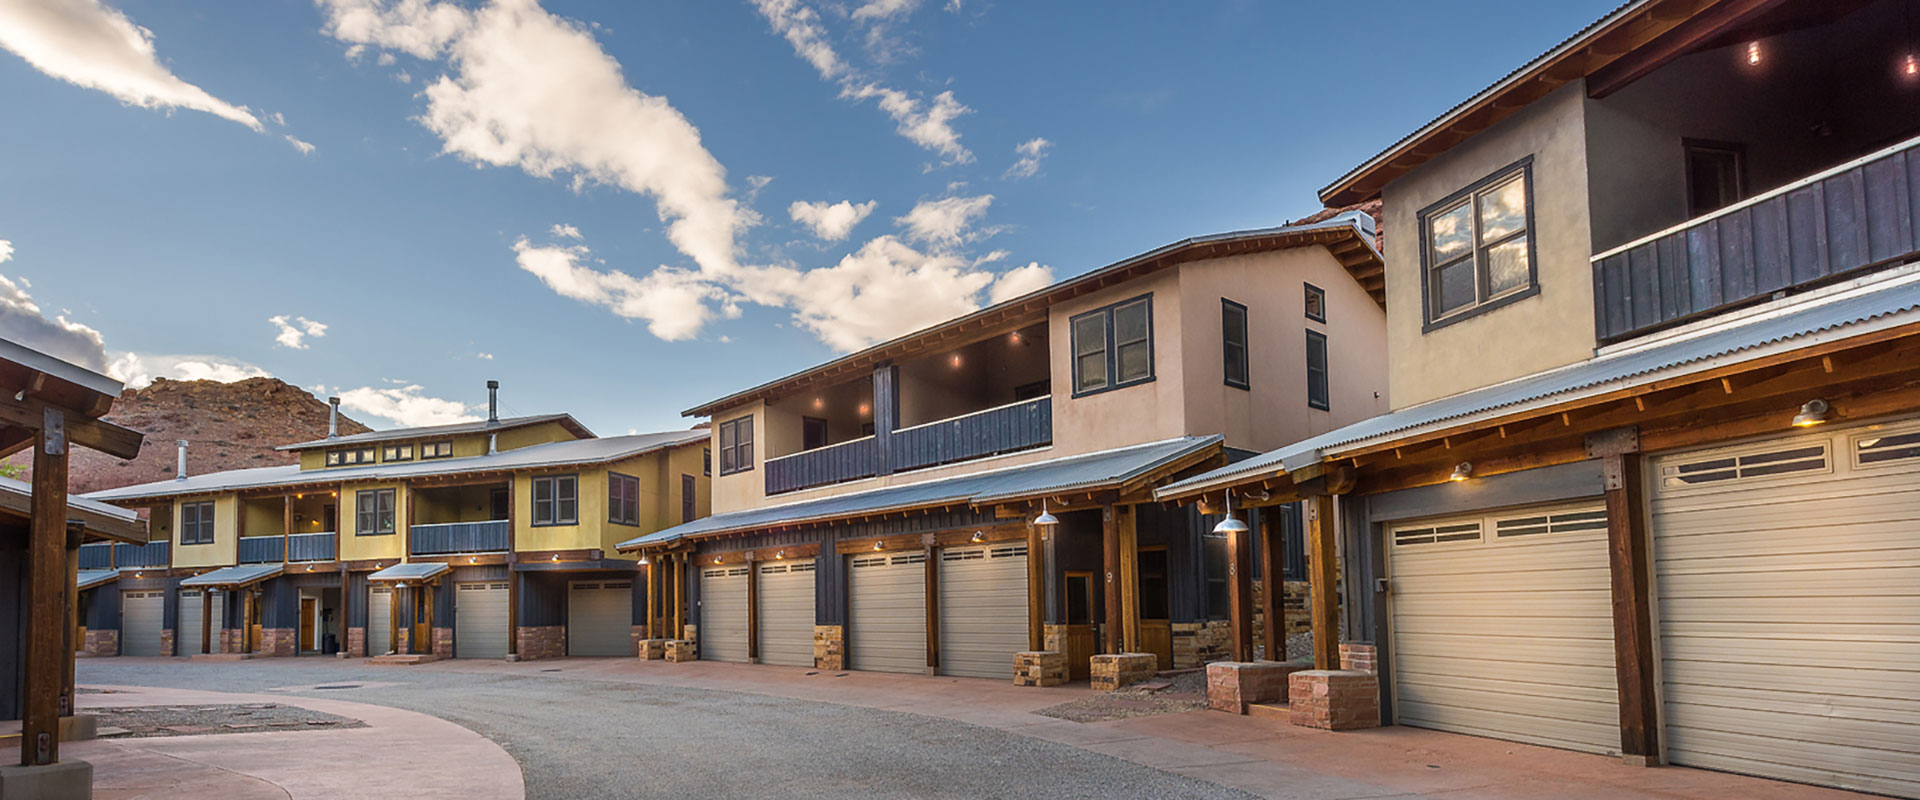 A sandstone mountain cliff is covered with a light dusting of snow on a sunny winter day in Moab, Utah.